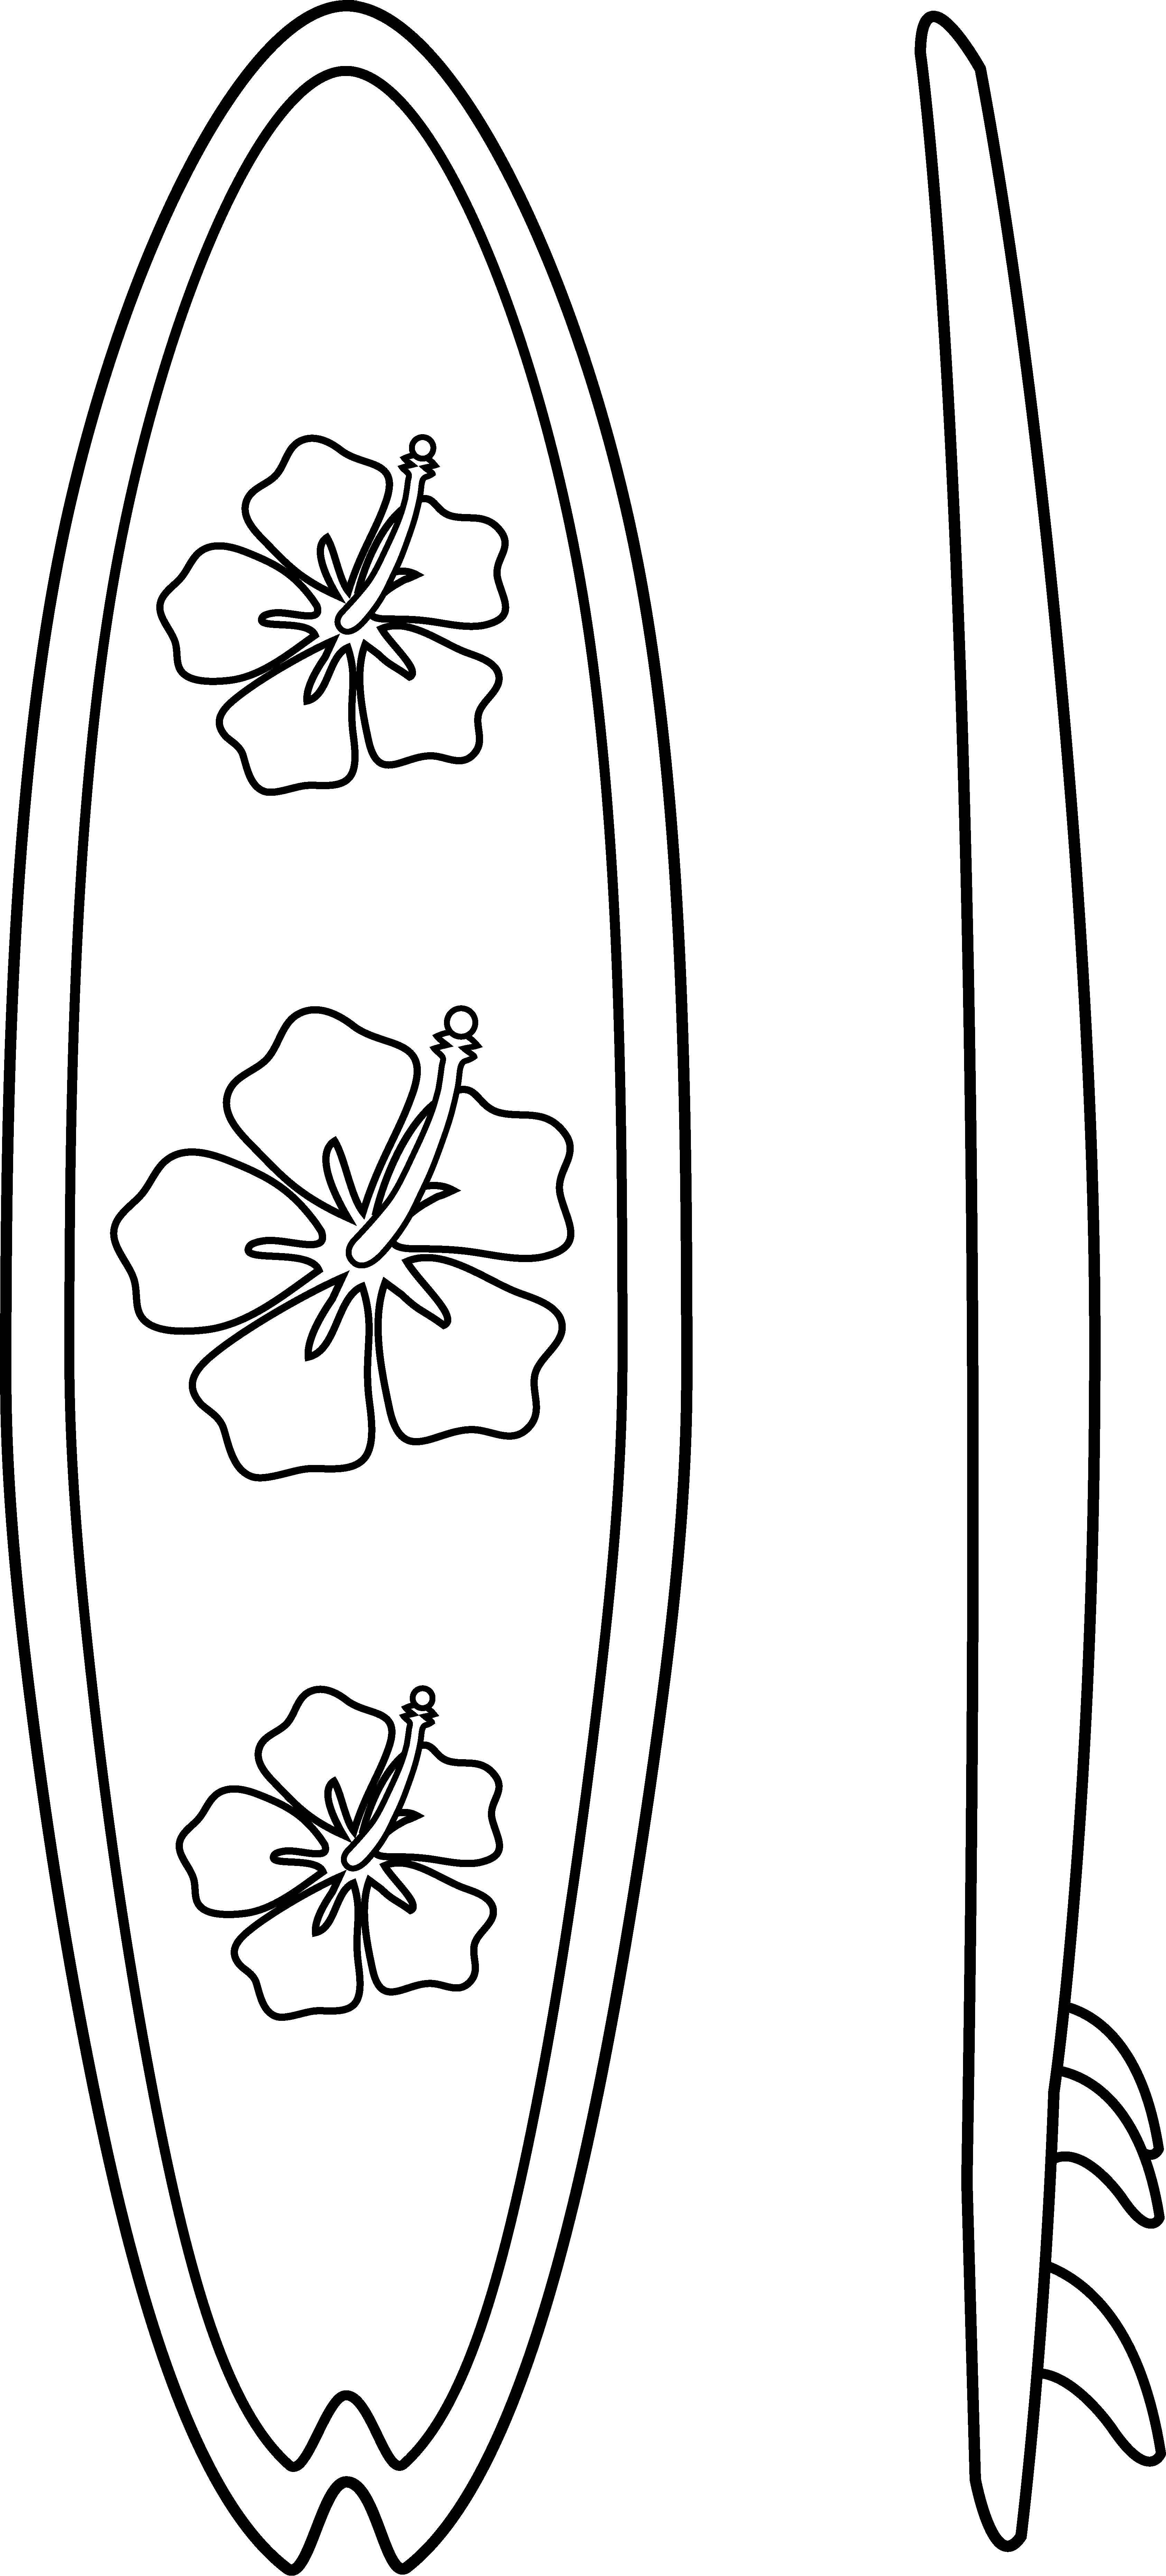 3372x7452 Collection Of Free Surfboard Vector Black And White. Download On